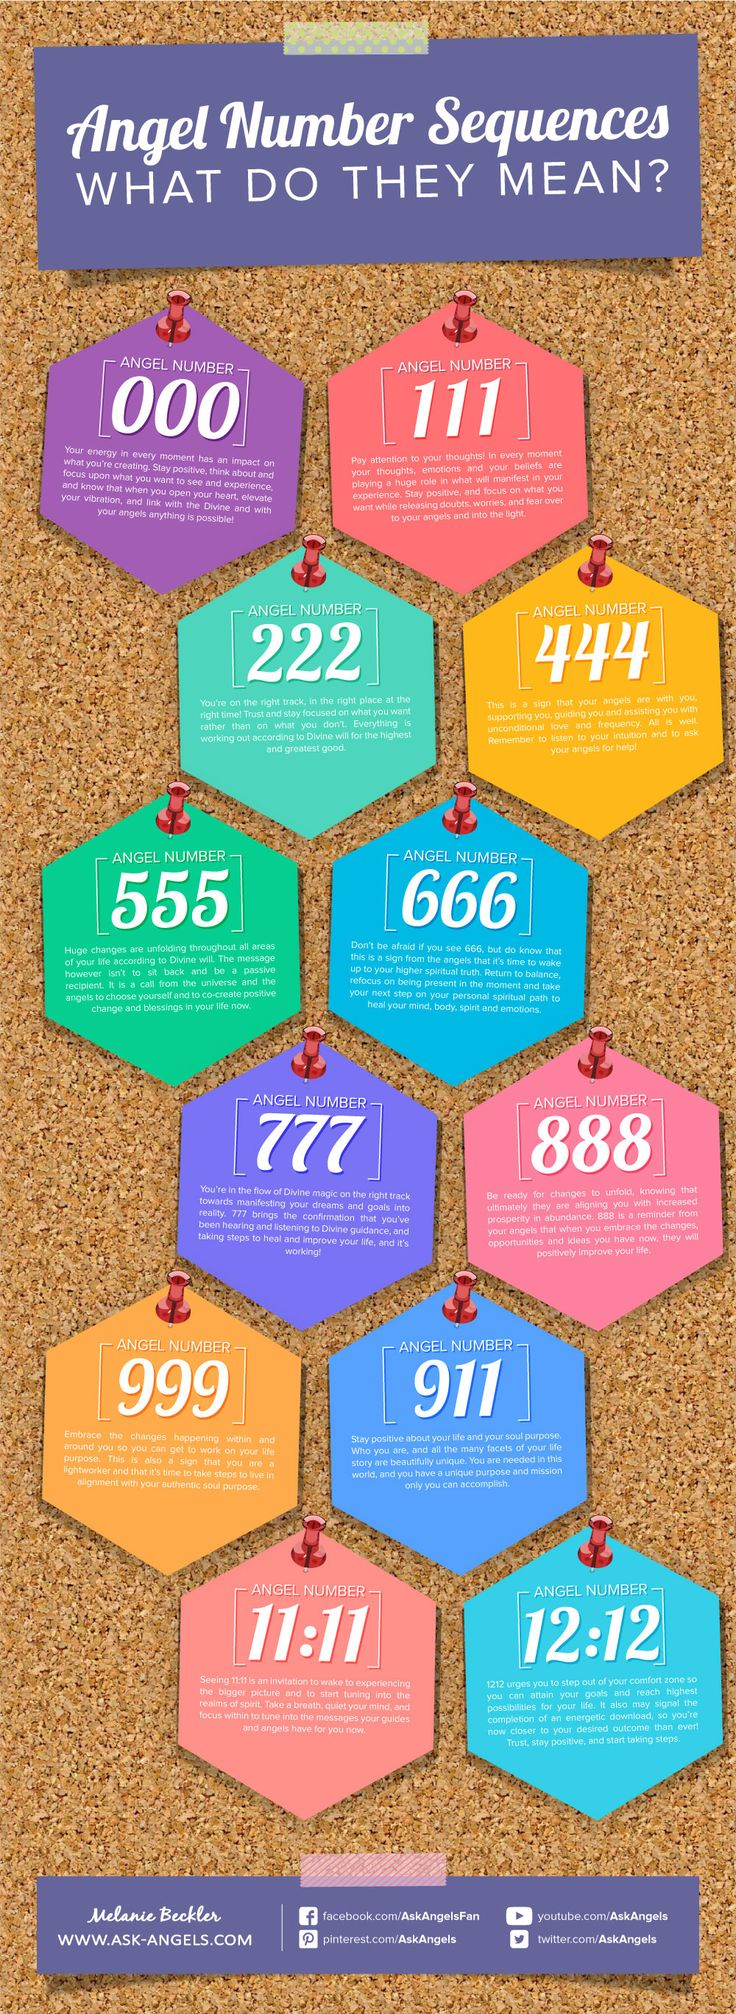 51 best signs from heaven images on pinterest angel numbers 444 meaning and astrology numerology. Black Bedroom Furniture Sets. Home Design Ideas